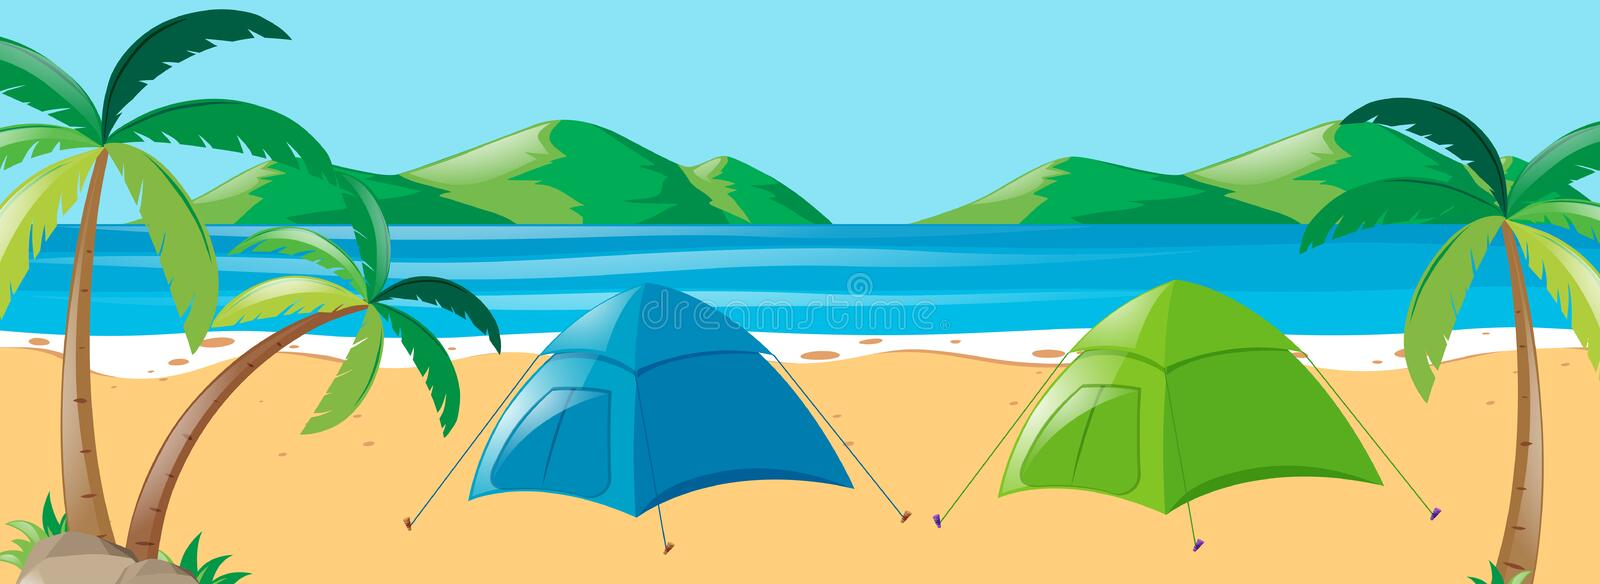 Scene with two tents on the beach. Illustration royalty free illustration